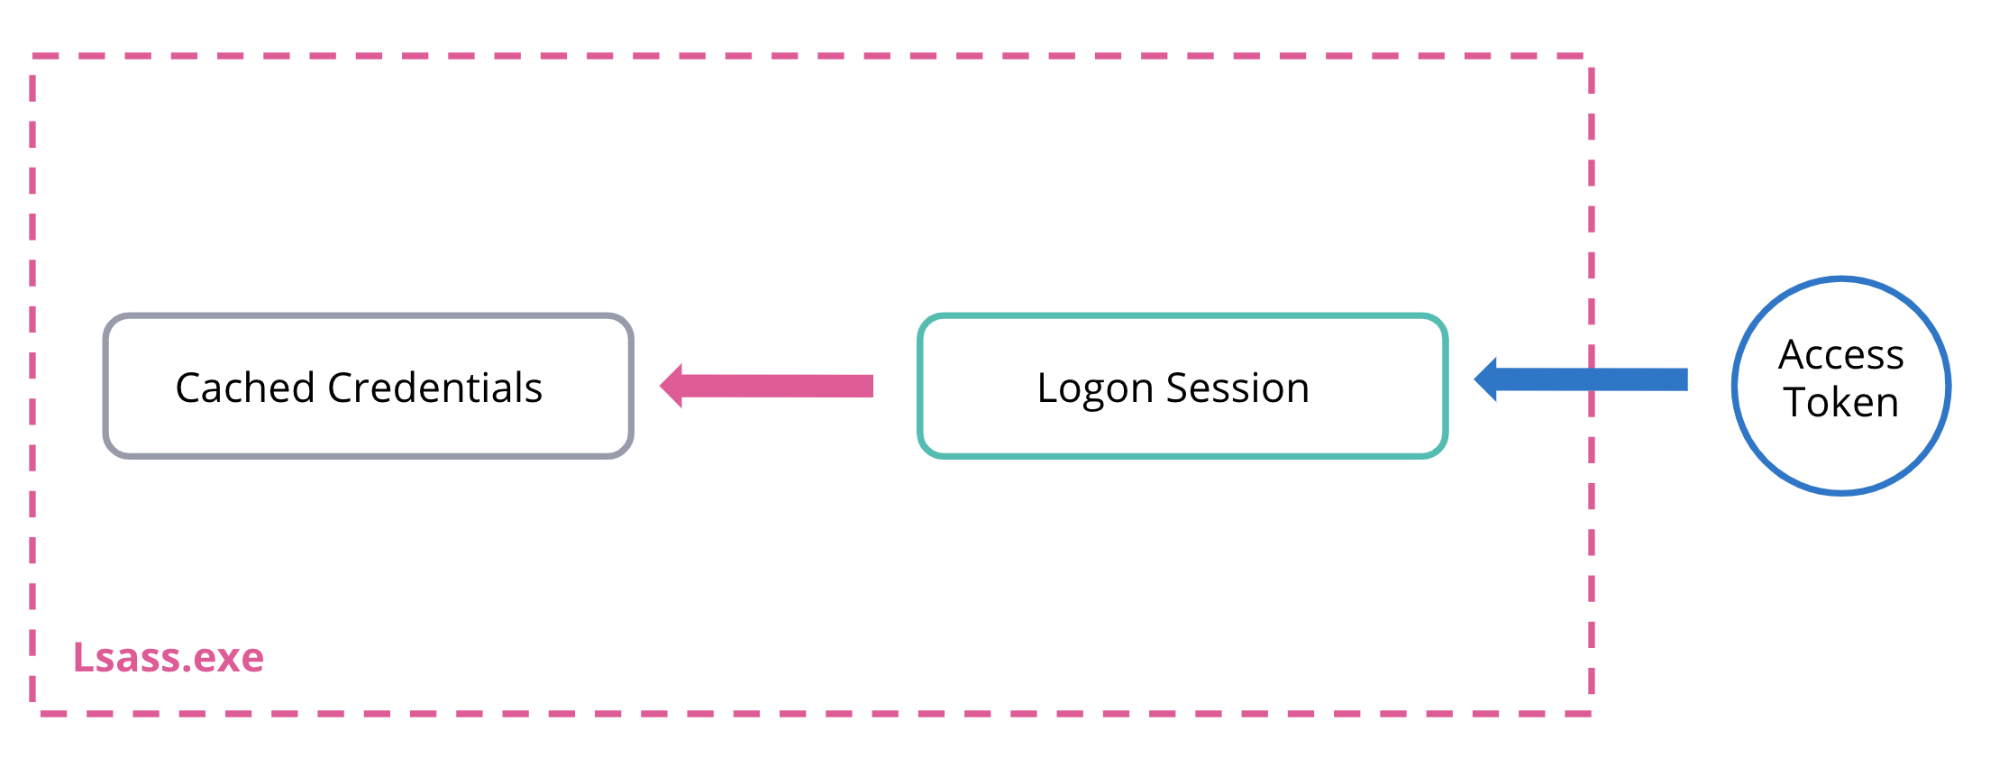 1-access-tokens-logon-sessions-blog-access-token-manipulation.png